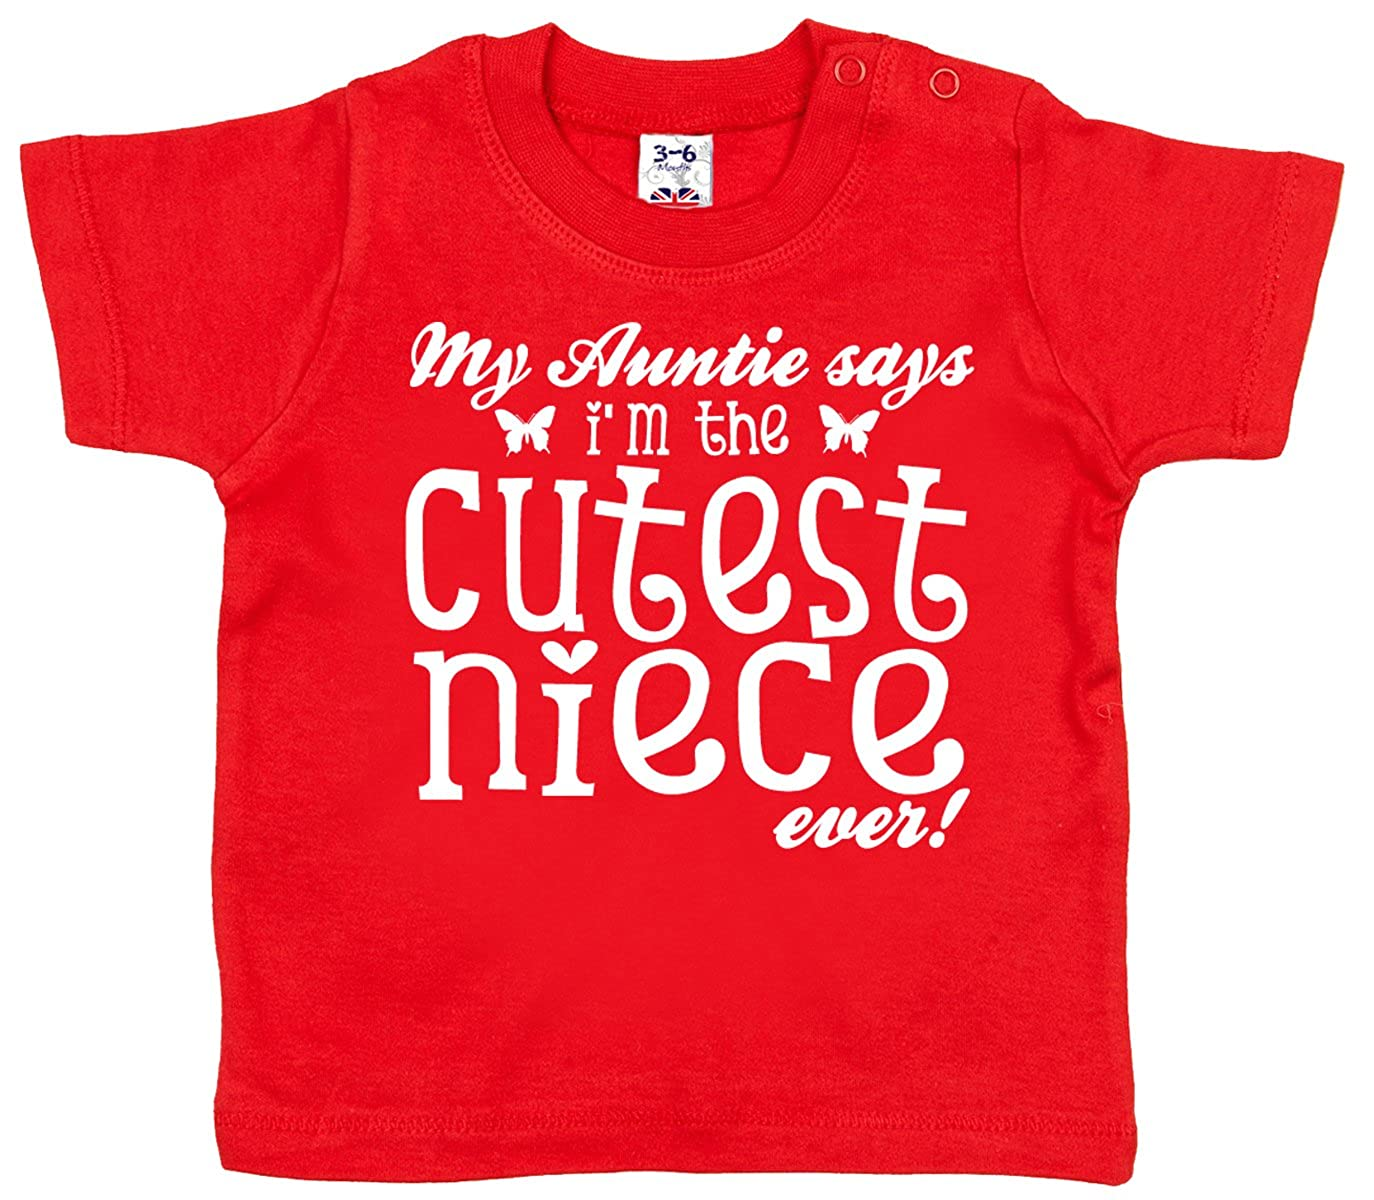 Dirty Fingers, My Auntie says I'm the Cutest Niece ever!, Baby T-shirt